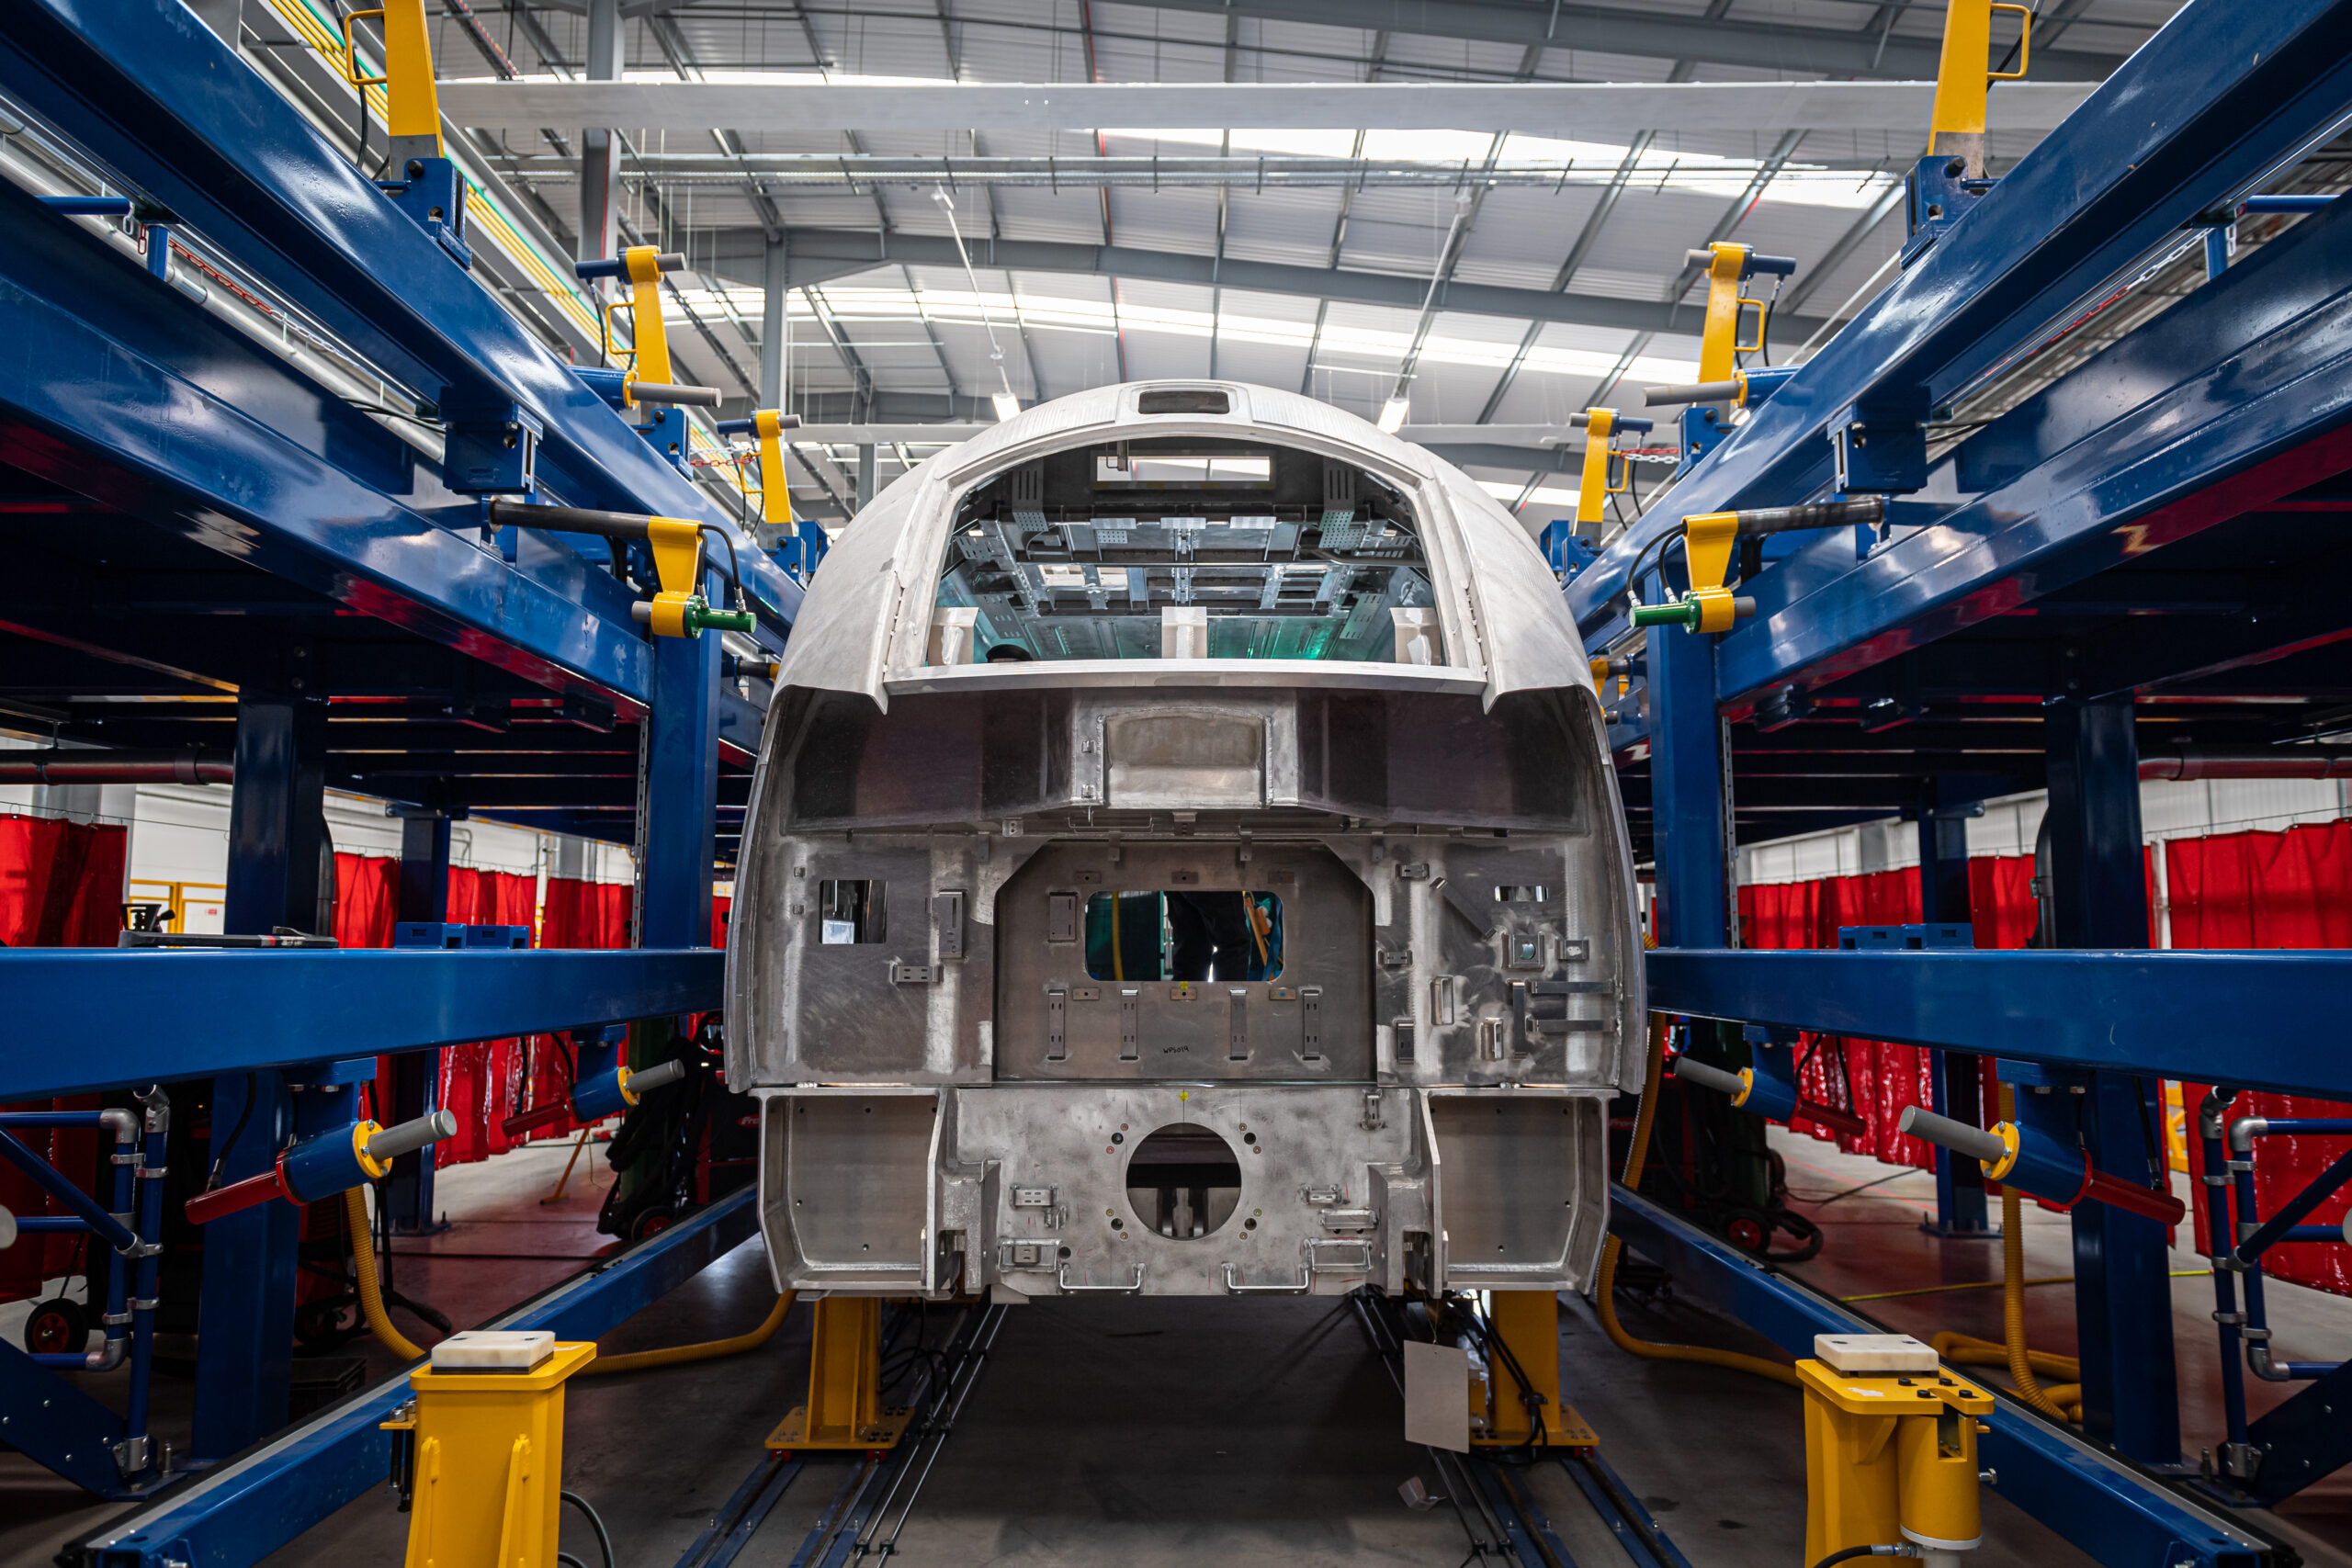 General view of a train shell the Weld Workshop at Hitachi Rail, Newton Aycliffe